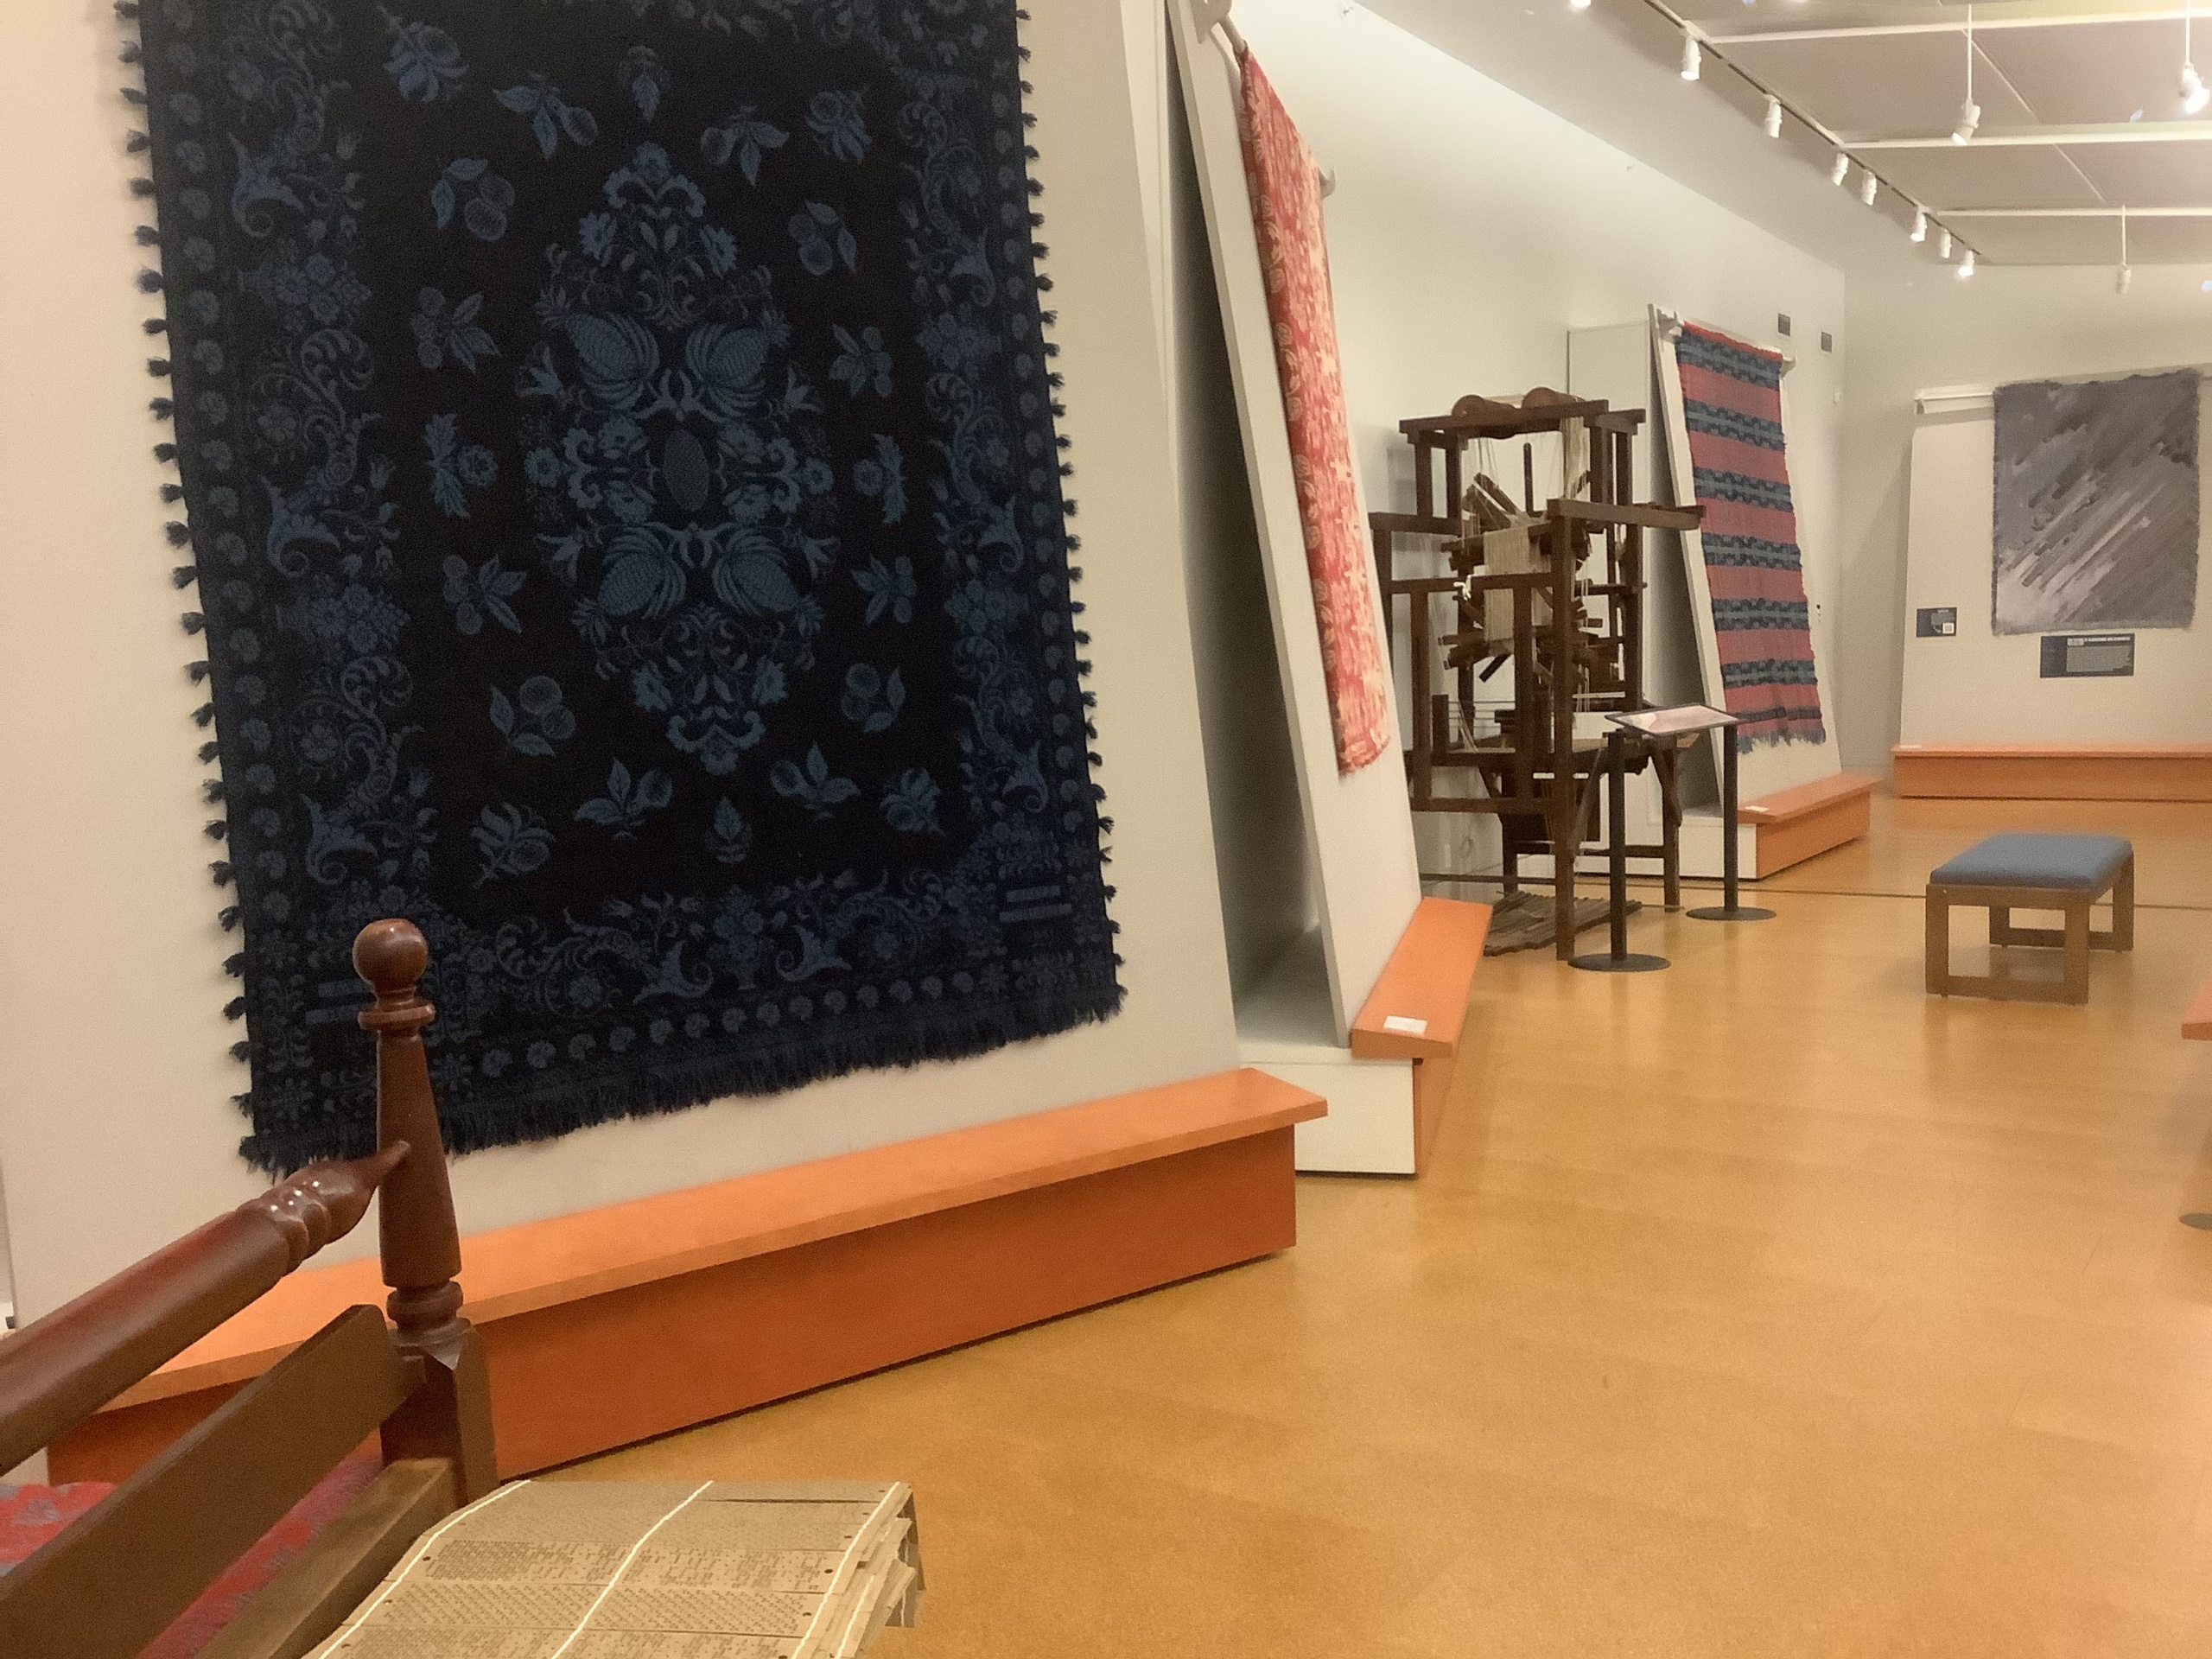 Exhibit with coverlets at McCarl Gallery